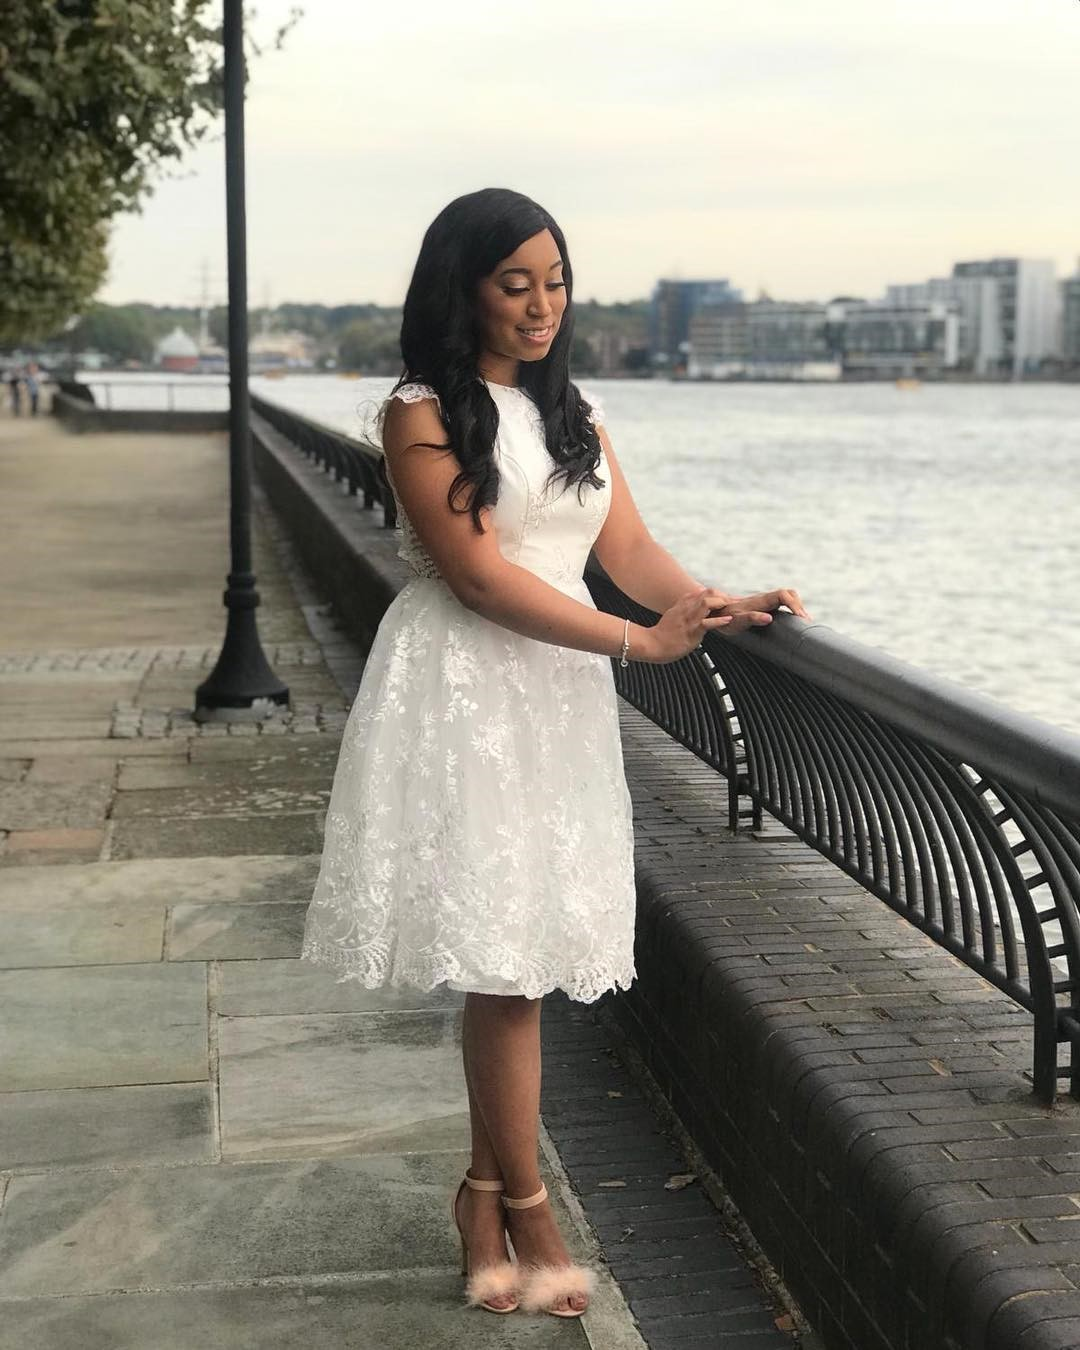 Bridal shower, Cute bridal shower photos and video of Pastor Chris Oyakhilome daughter